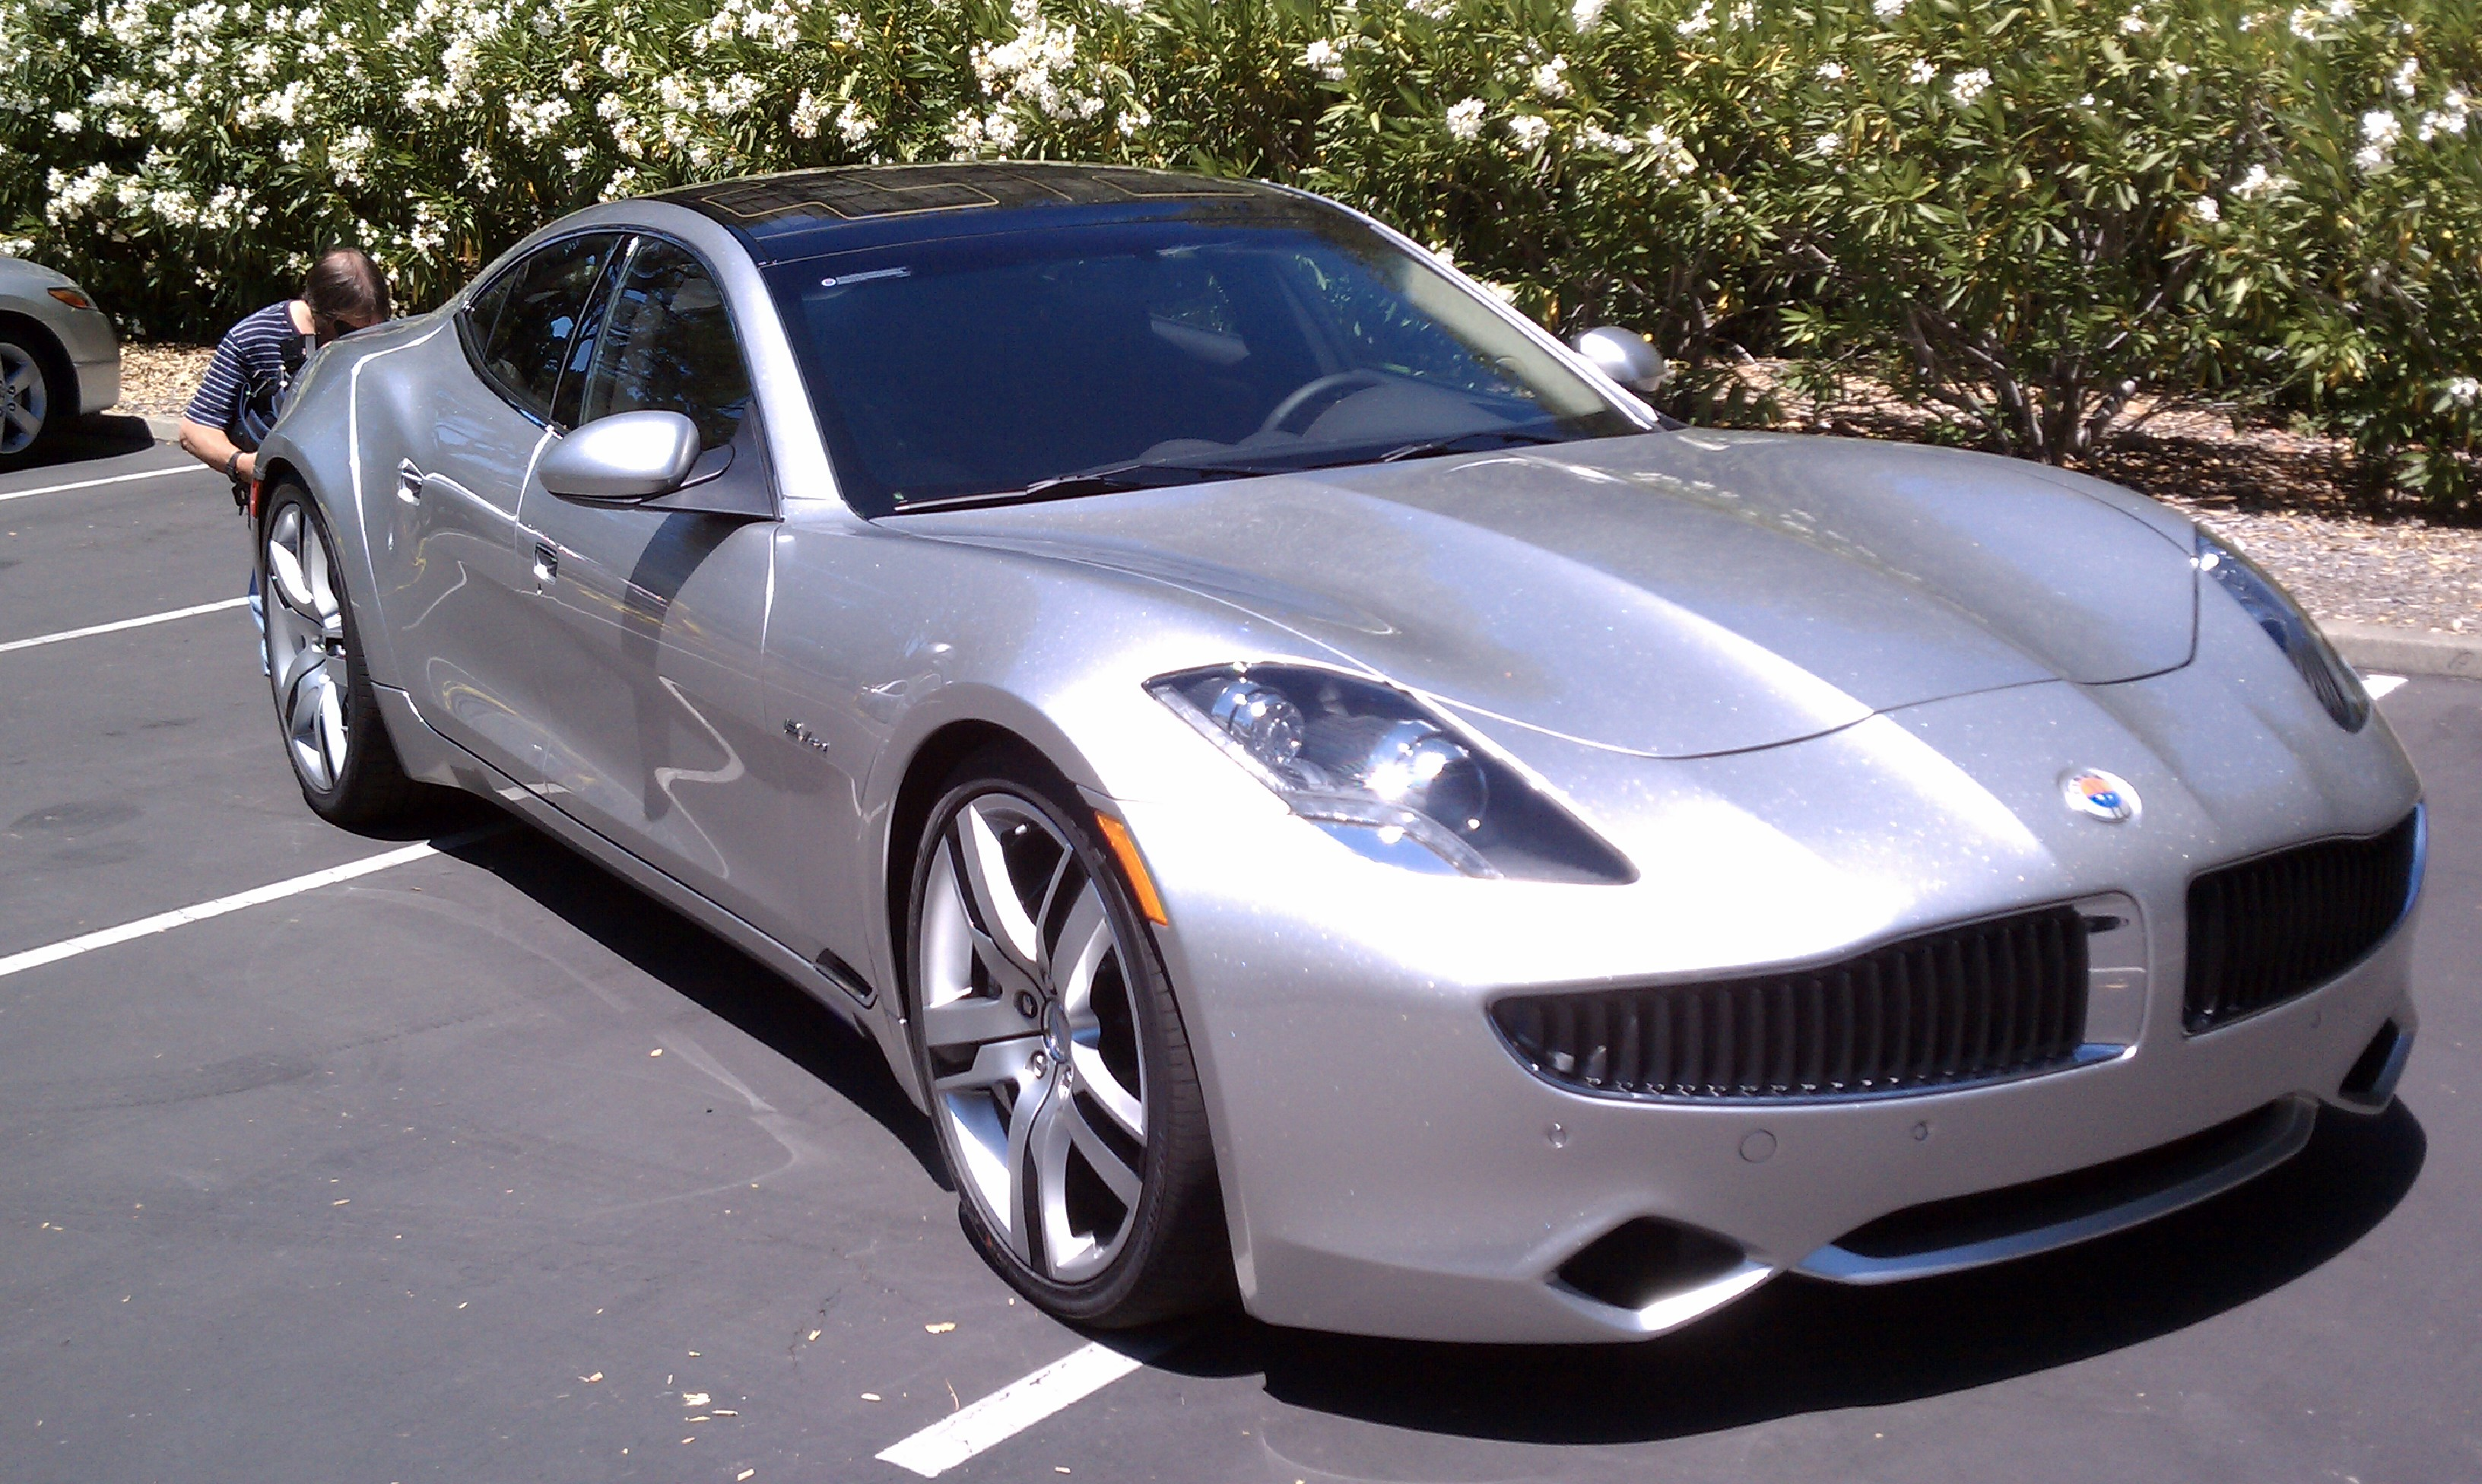 Ray Lane's Fisker Karma in 2011.